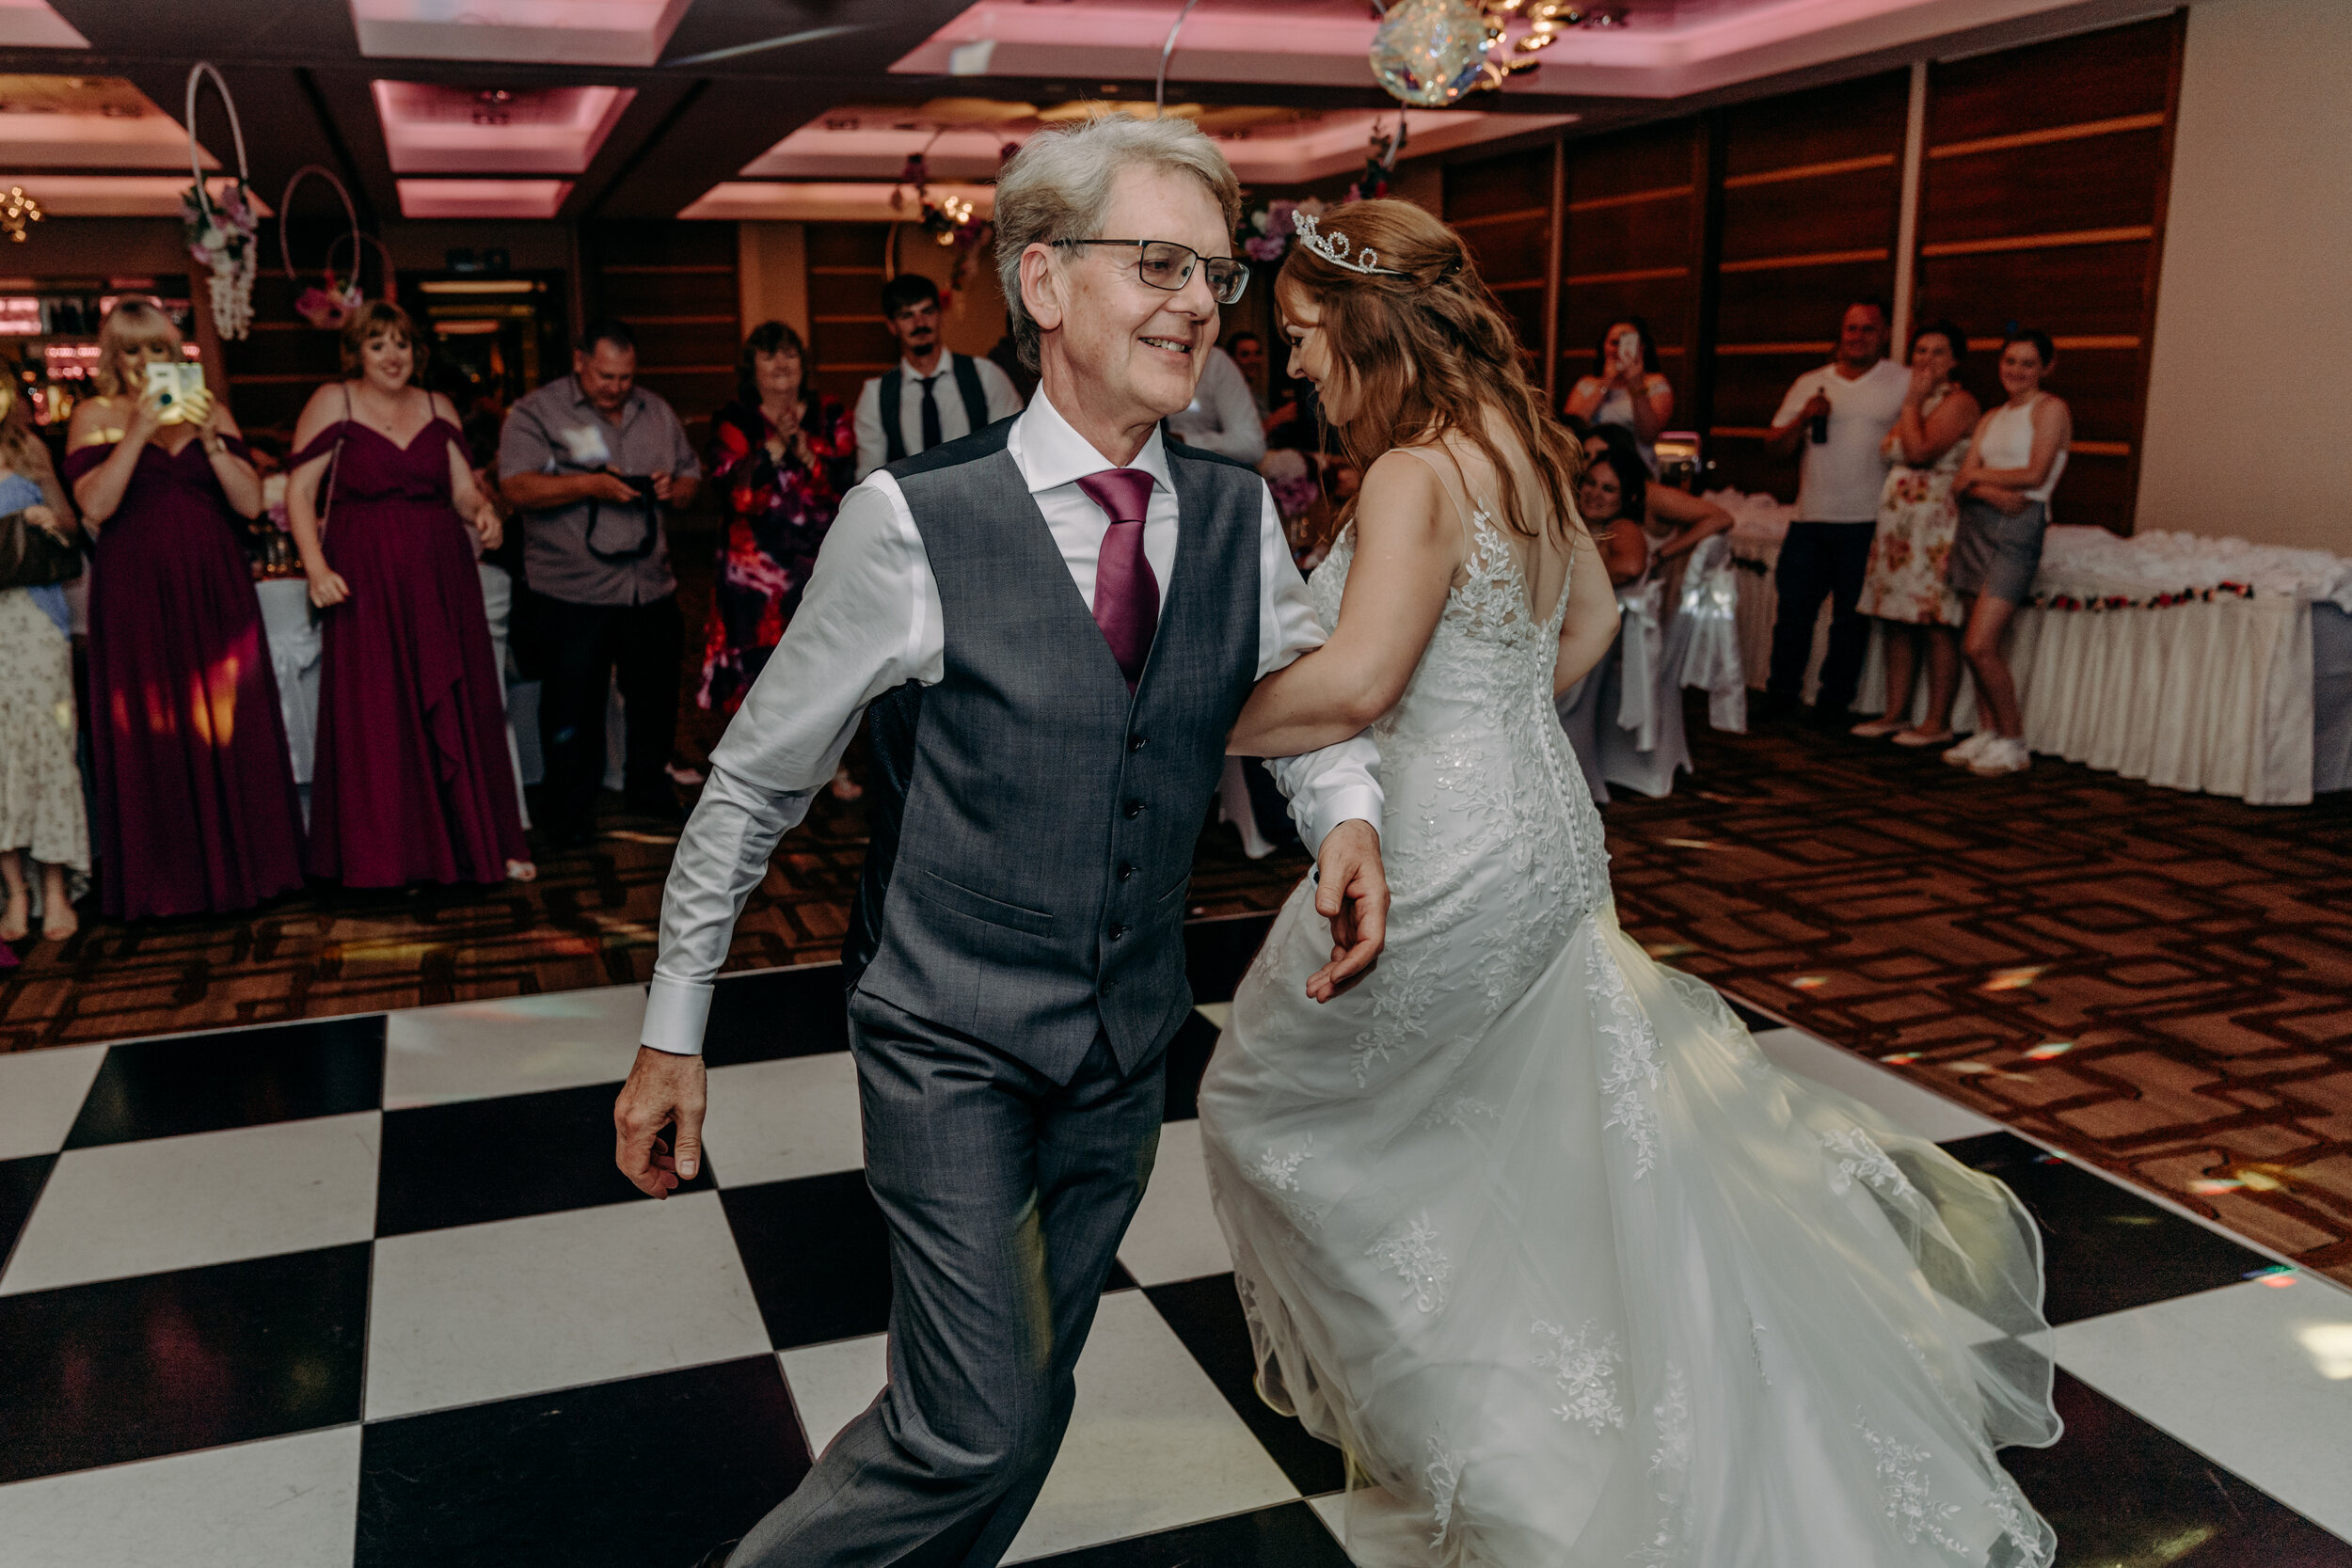 Dad & daughter wedding dance